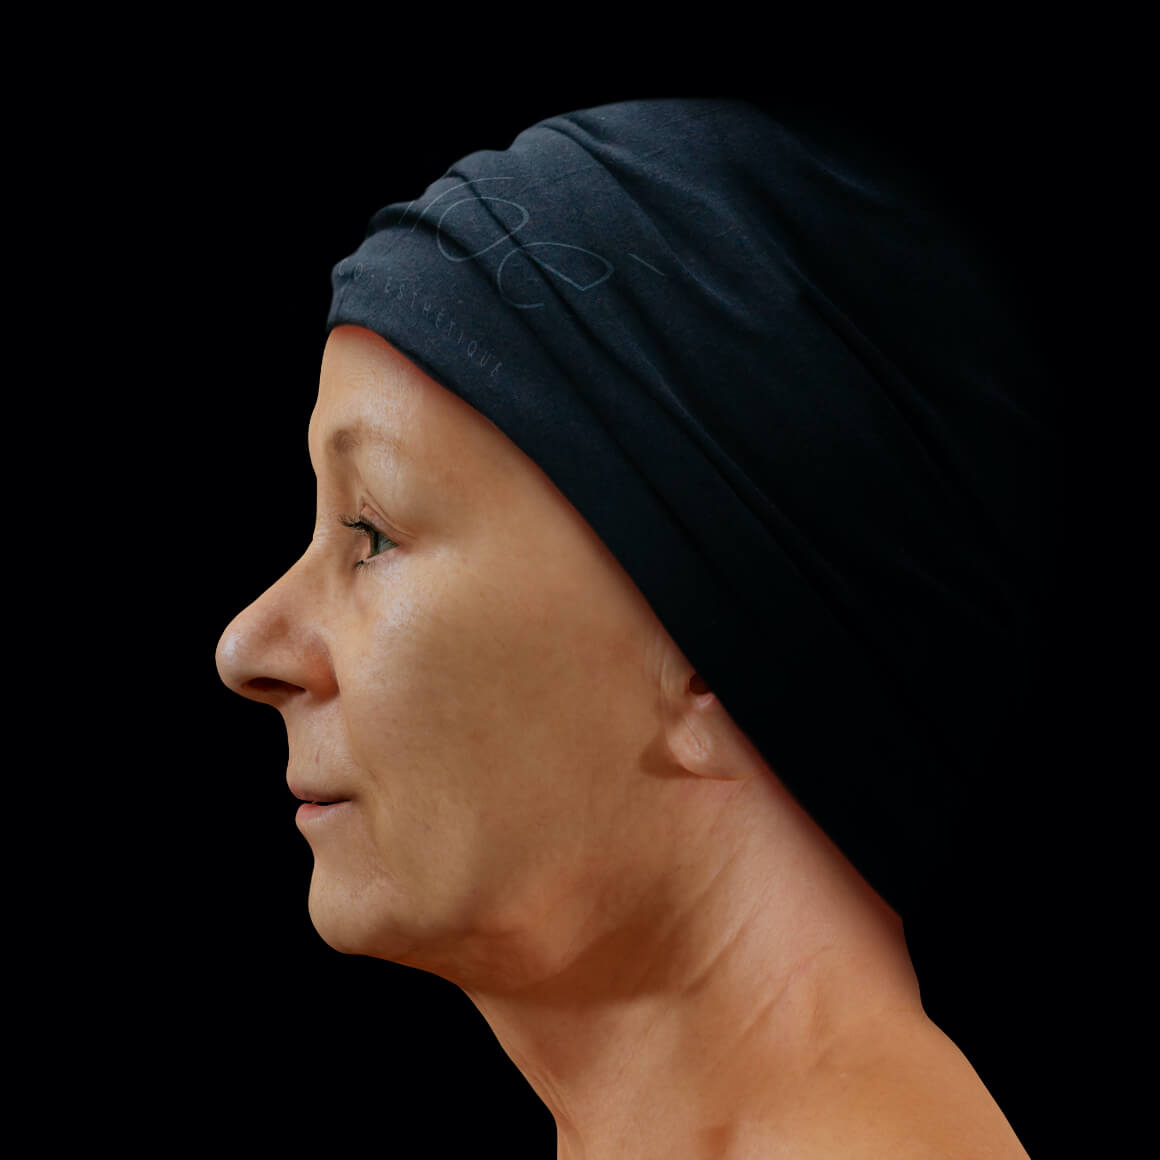 Woman, patient at Clinique Chloé, positioned sideways, after mesotherapy treatments for wrinkle reduction